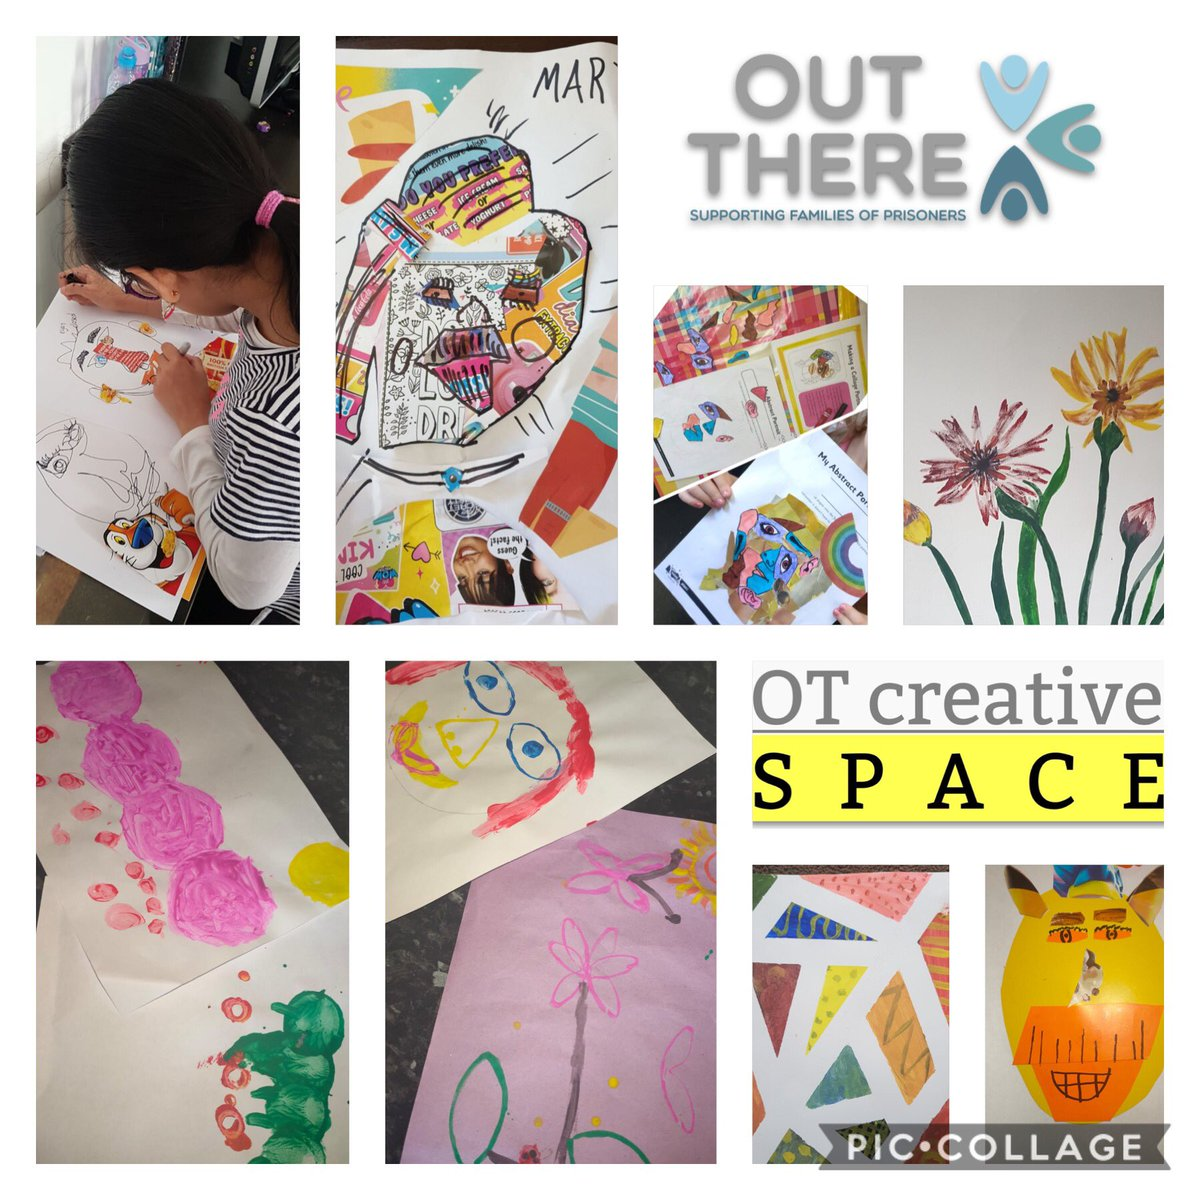 A huge thanks to Lynda @OTcreativeSPACE for delivering our Summer Art Programme! - Fun, inclusive with something for everyone 😊 our families absolutely loved it 🥰